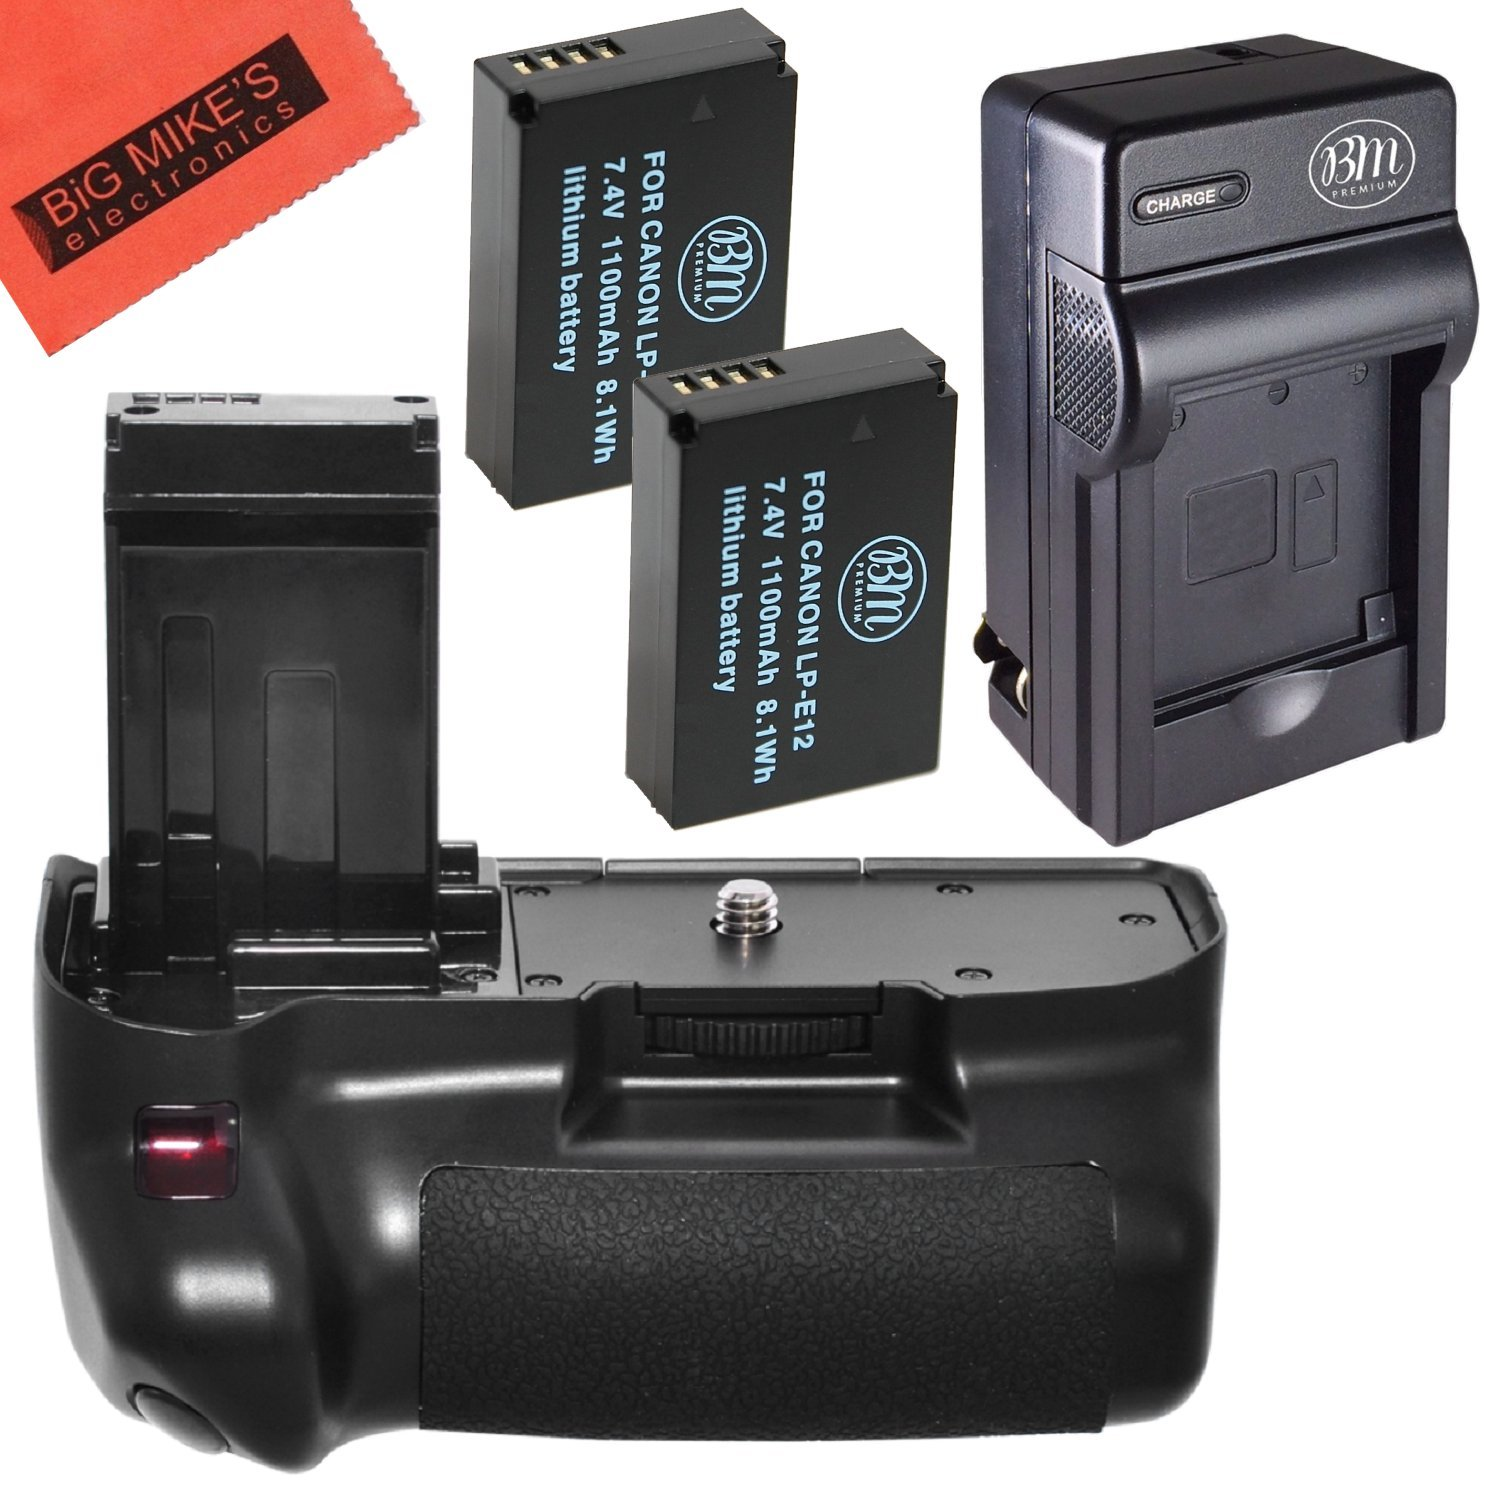 Battery Grip Kit for Canon Rebel SL1 EOS 100D Digital SLR Camera Includes Vertical Battery Grip + Qty 2 Replacement LP-E12 Batteries + Battery Charger by Big Mike's